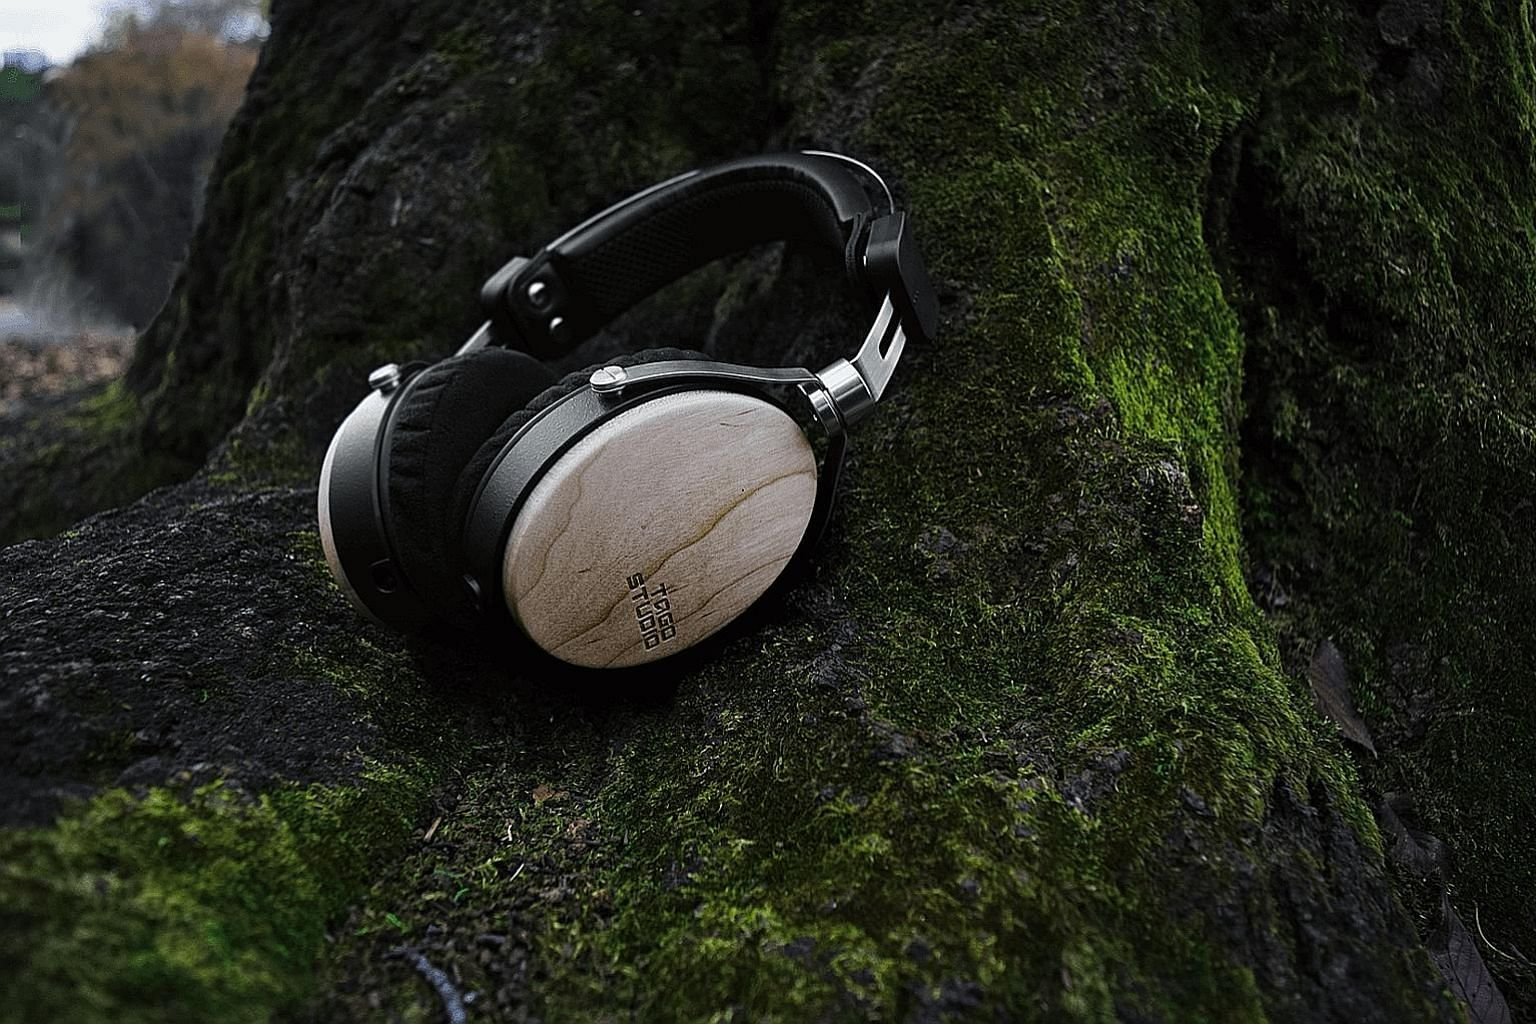 The wooden earcups let the headphones present a richer, more natural sound.